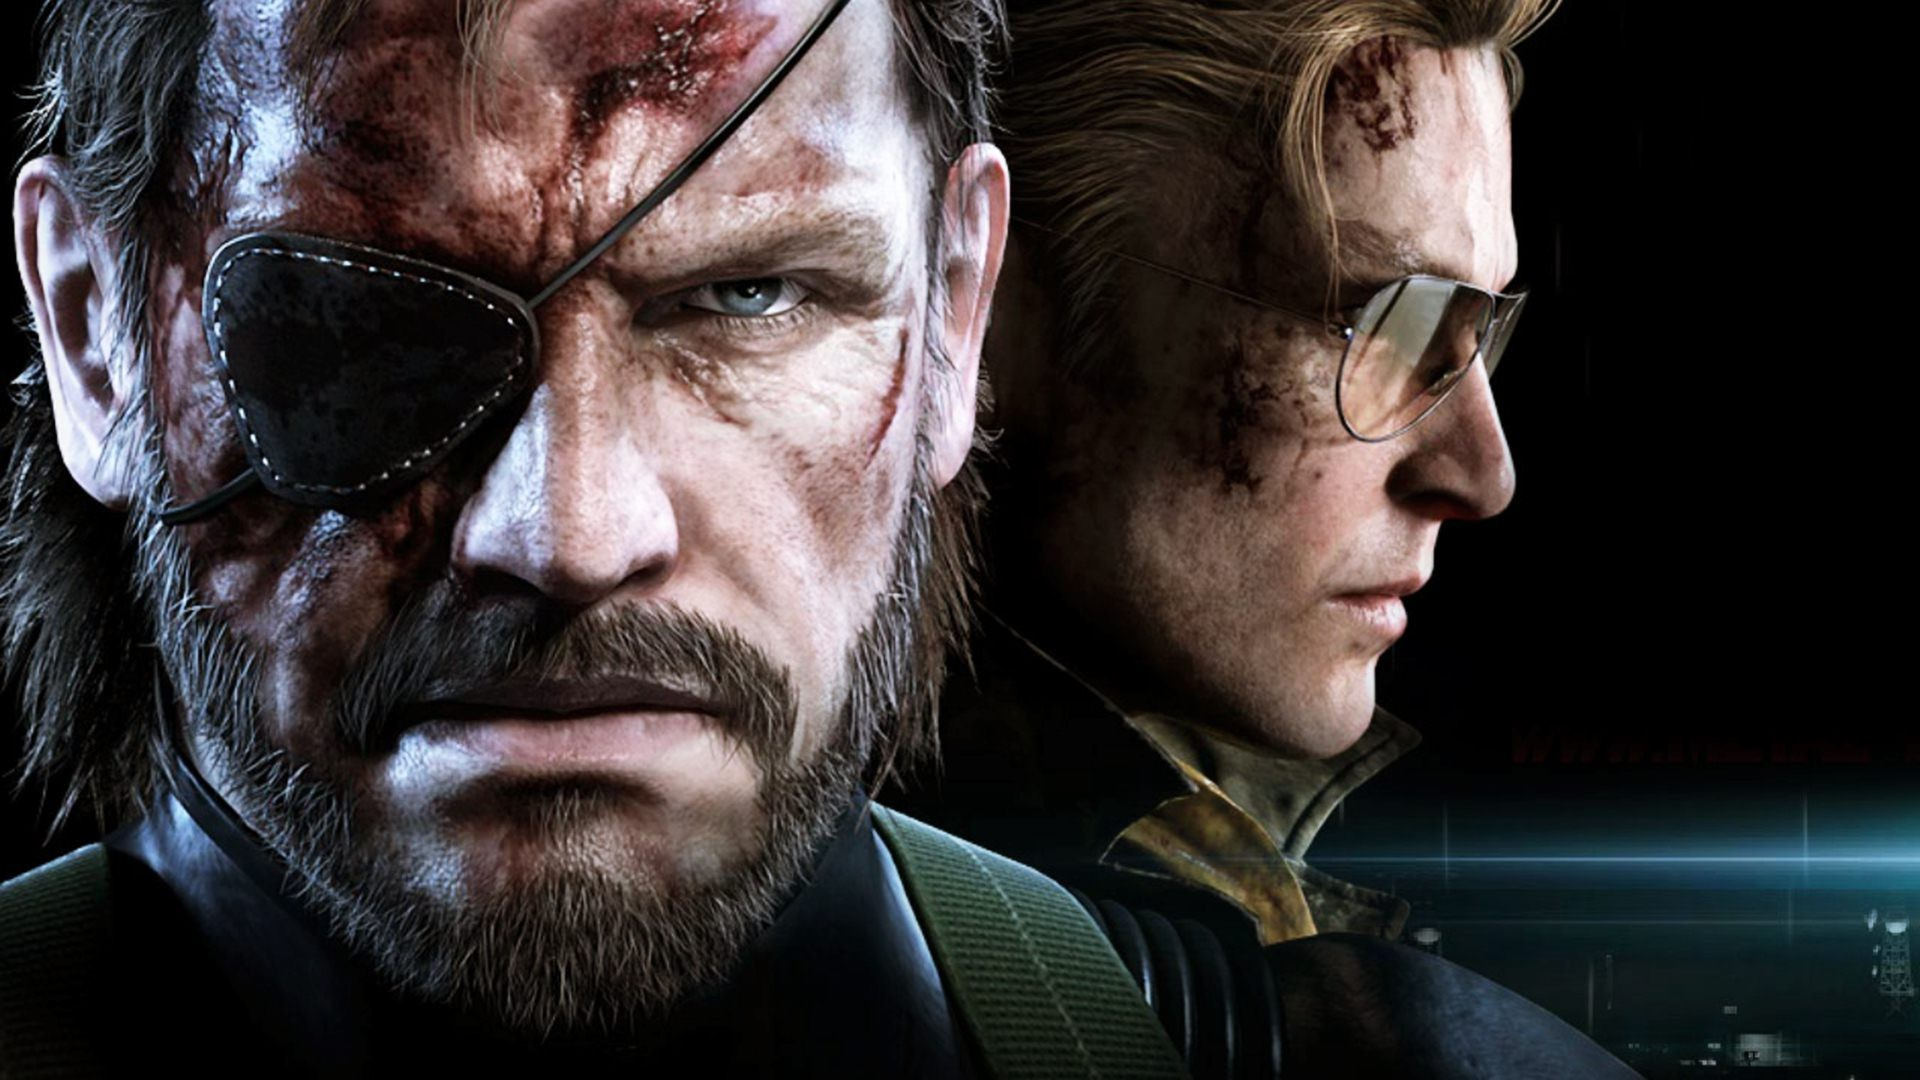 Metal Gear Solid 5 Wallpapers Photo